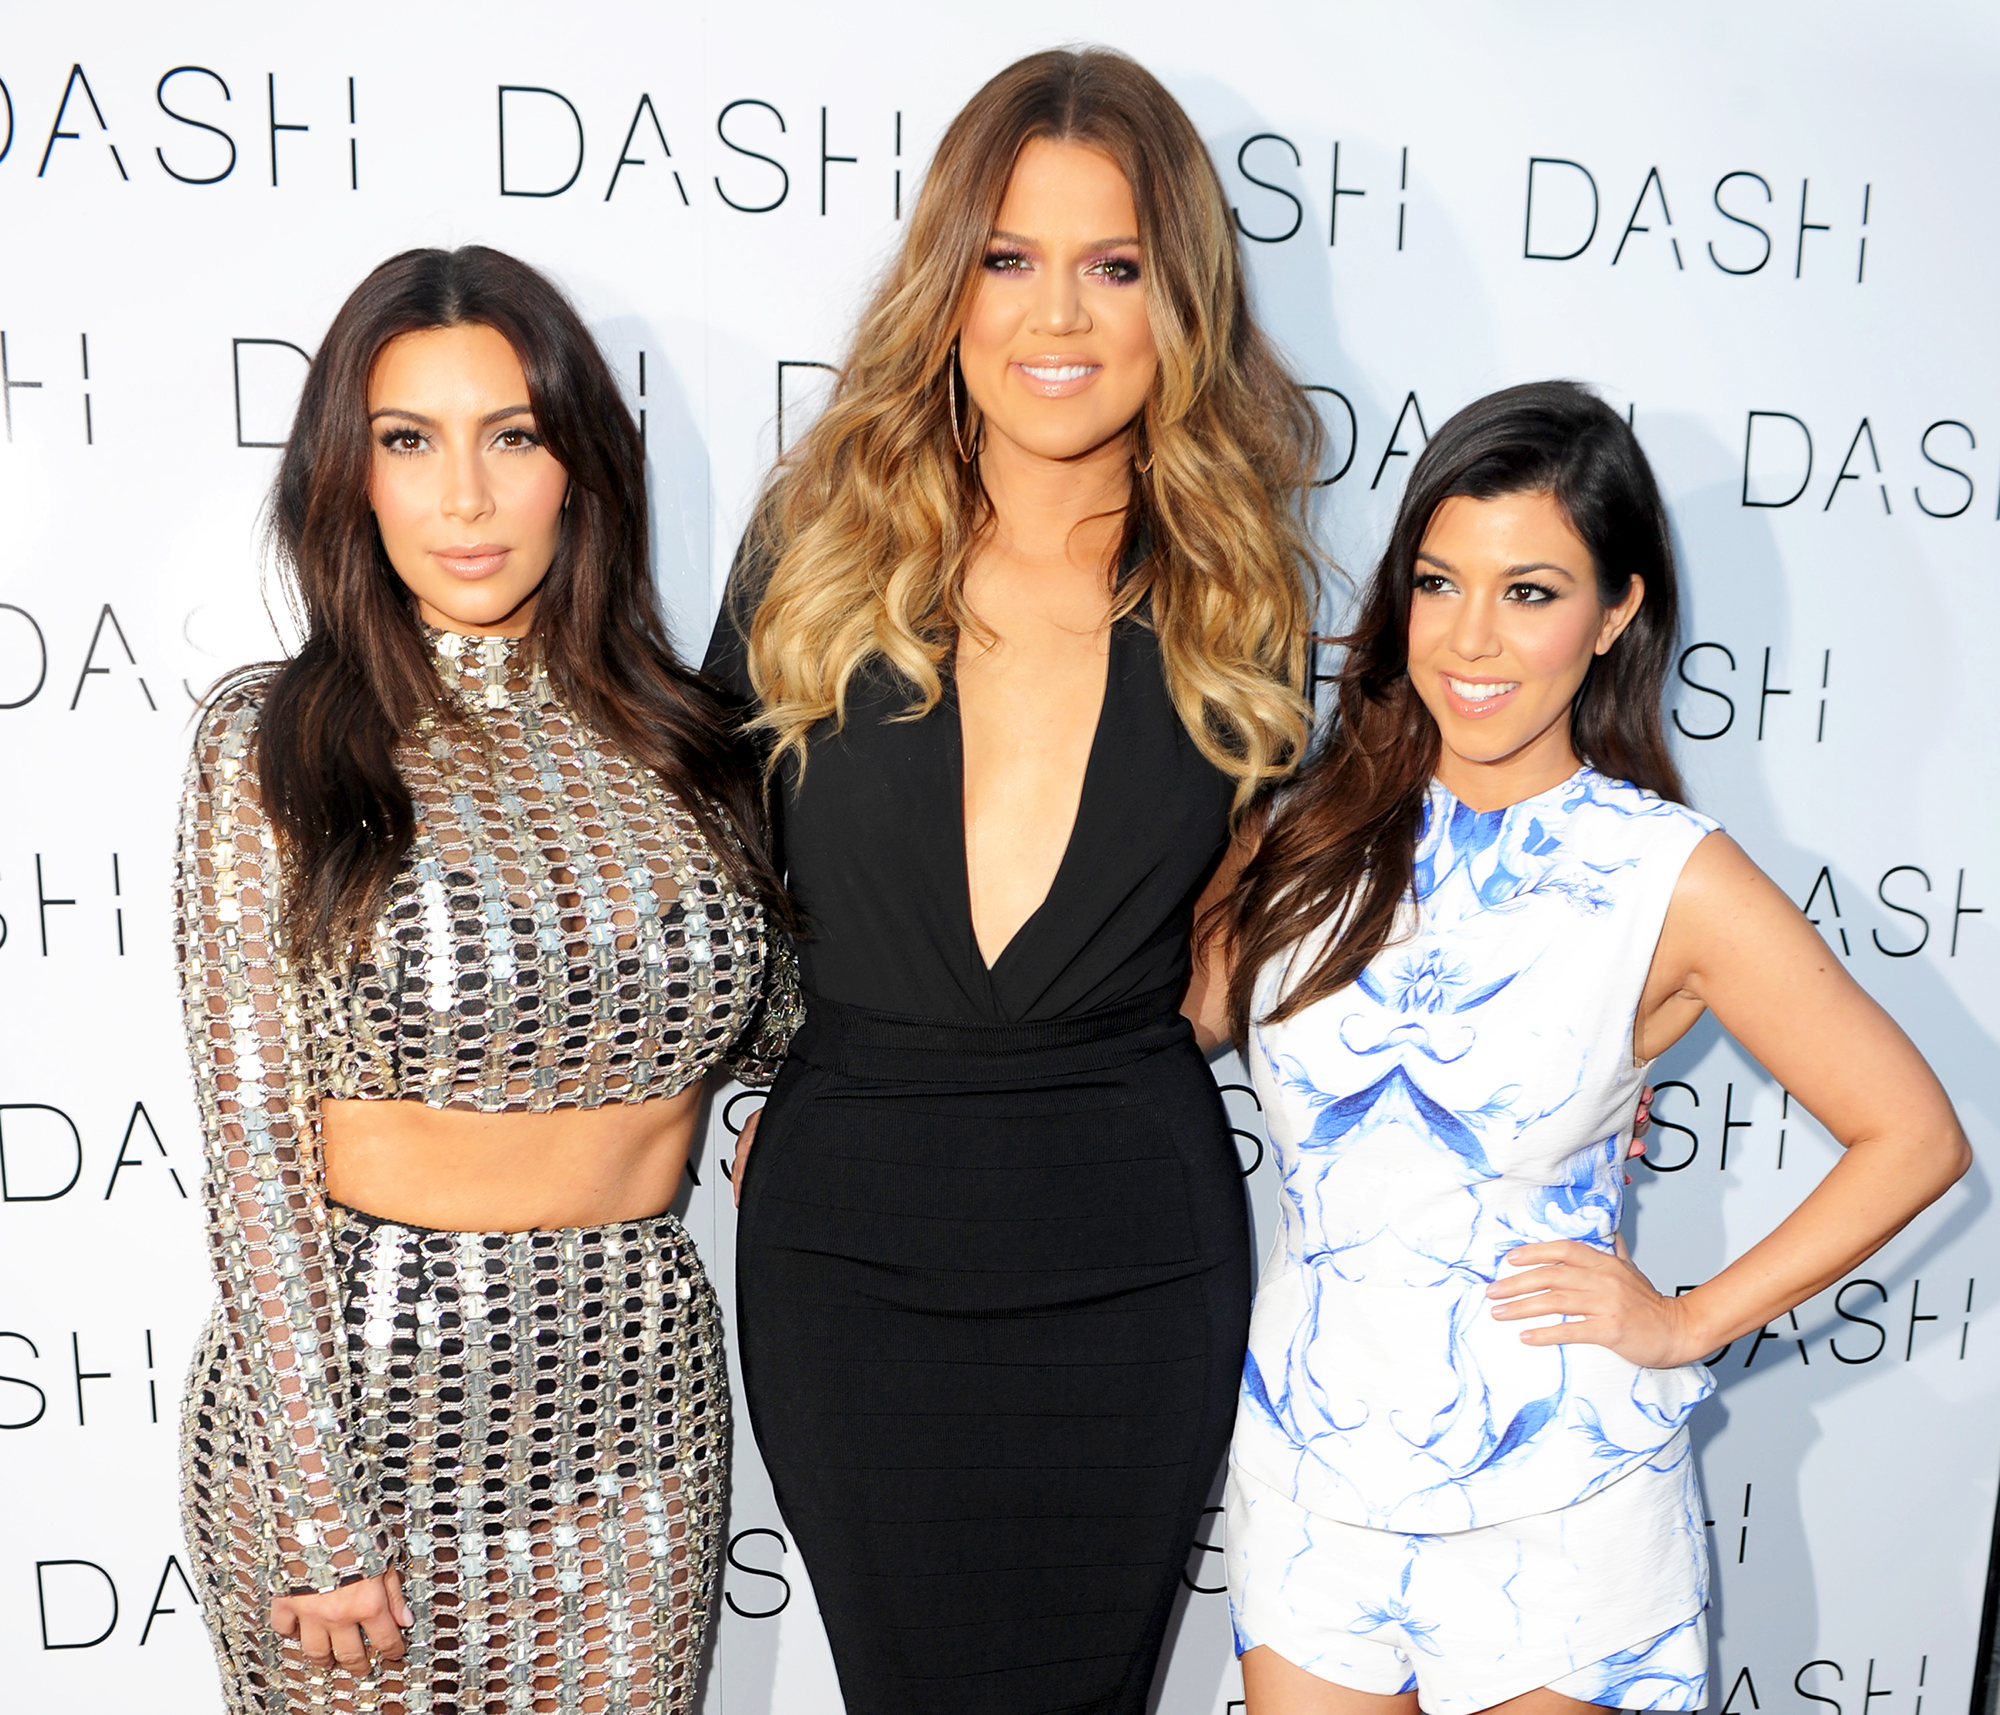 Kris Jenner Wishes Kourtney Kardashian Happy Birthday in Throwback Snap